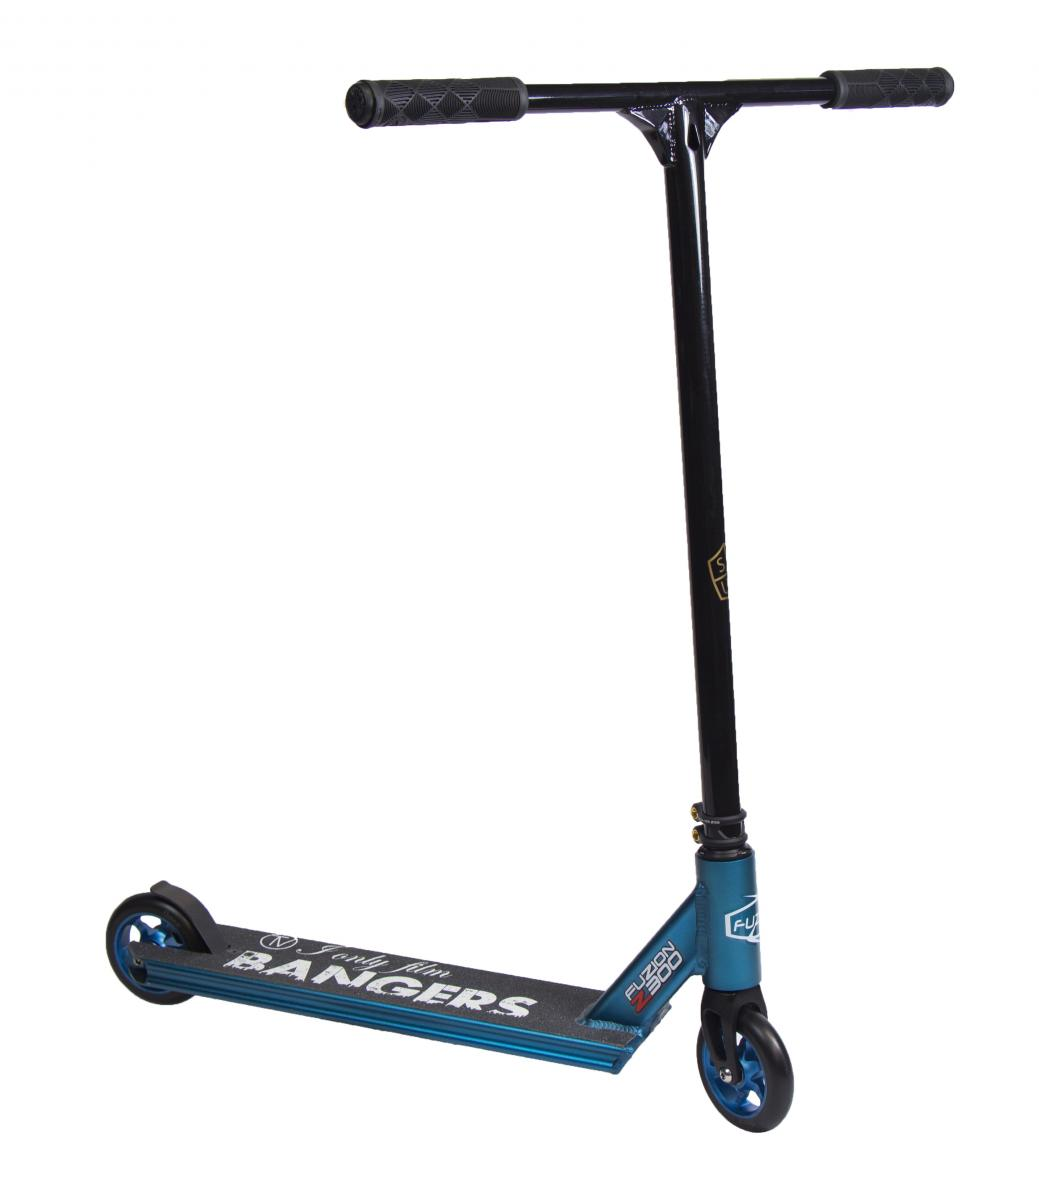 Fuzion Complete Stunt Scooters - MyProScooter